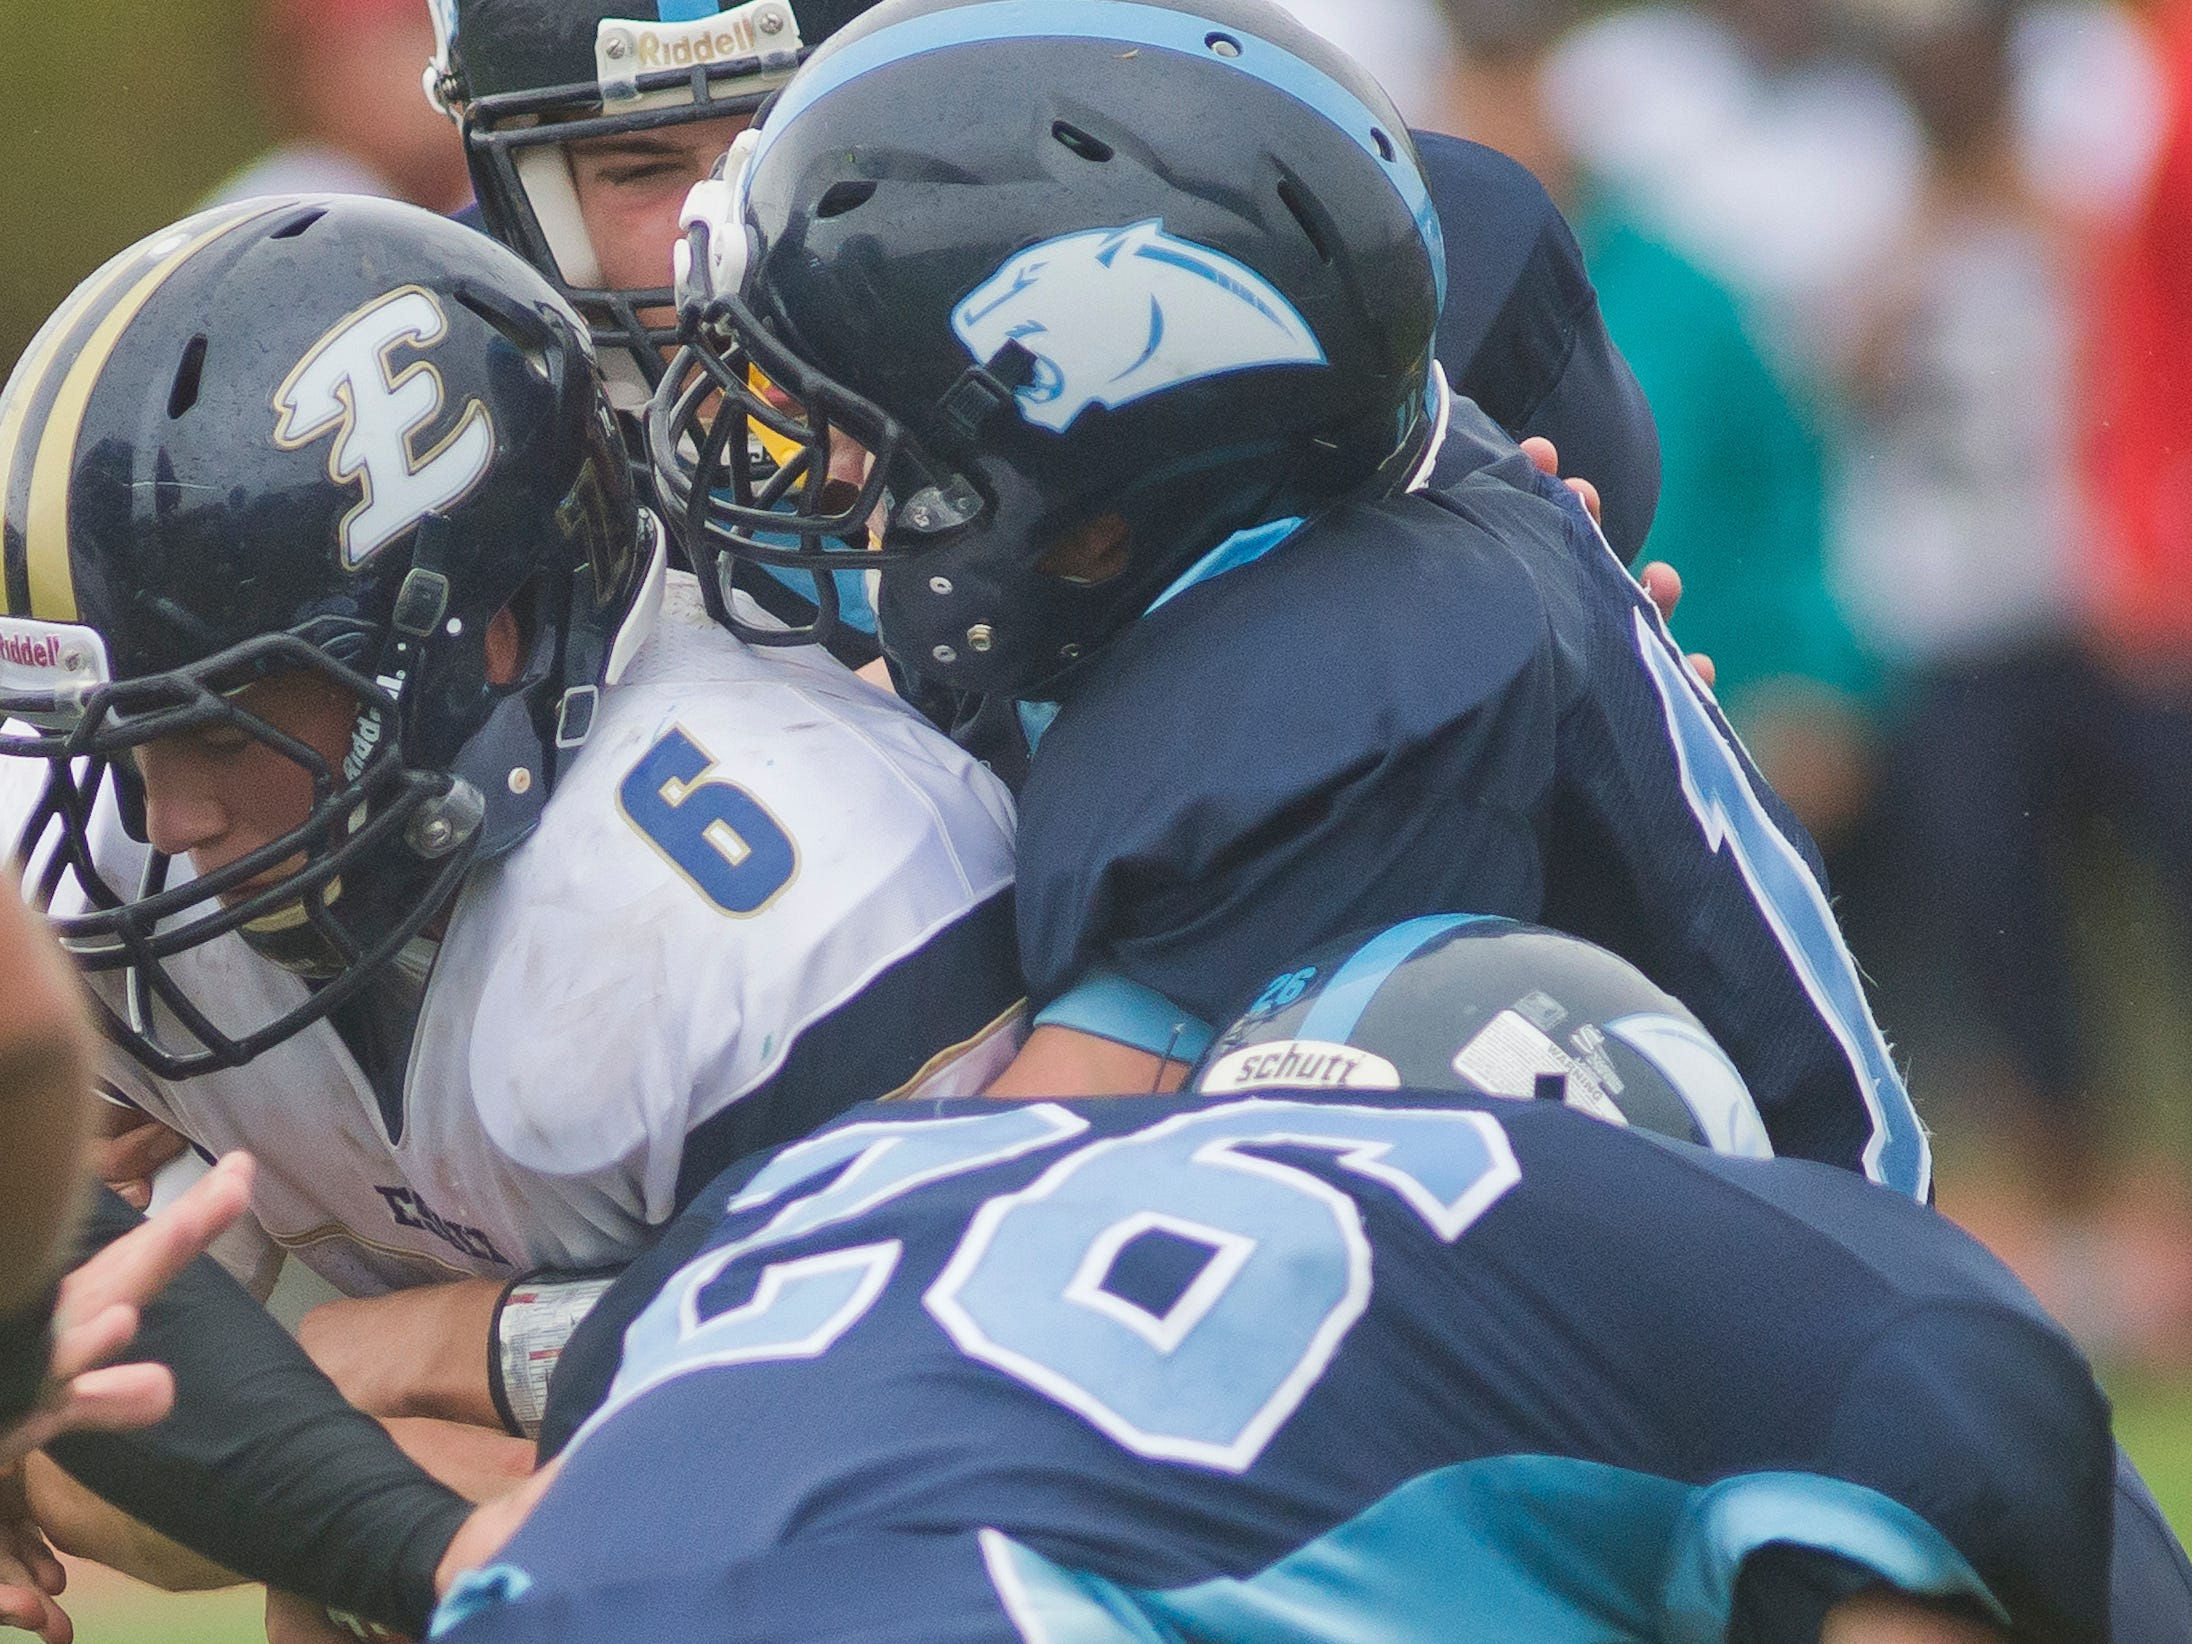 Essex High School's #6 Cody Greene, despite finding holes in MMU's defense for much of first half, gets caught up by the Cougars' #26 Johnny Benvenuto and others during Saturday's game in Jericho.